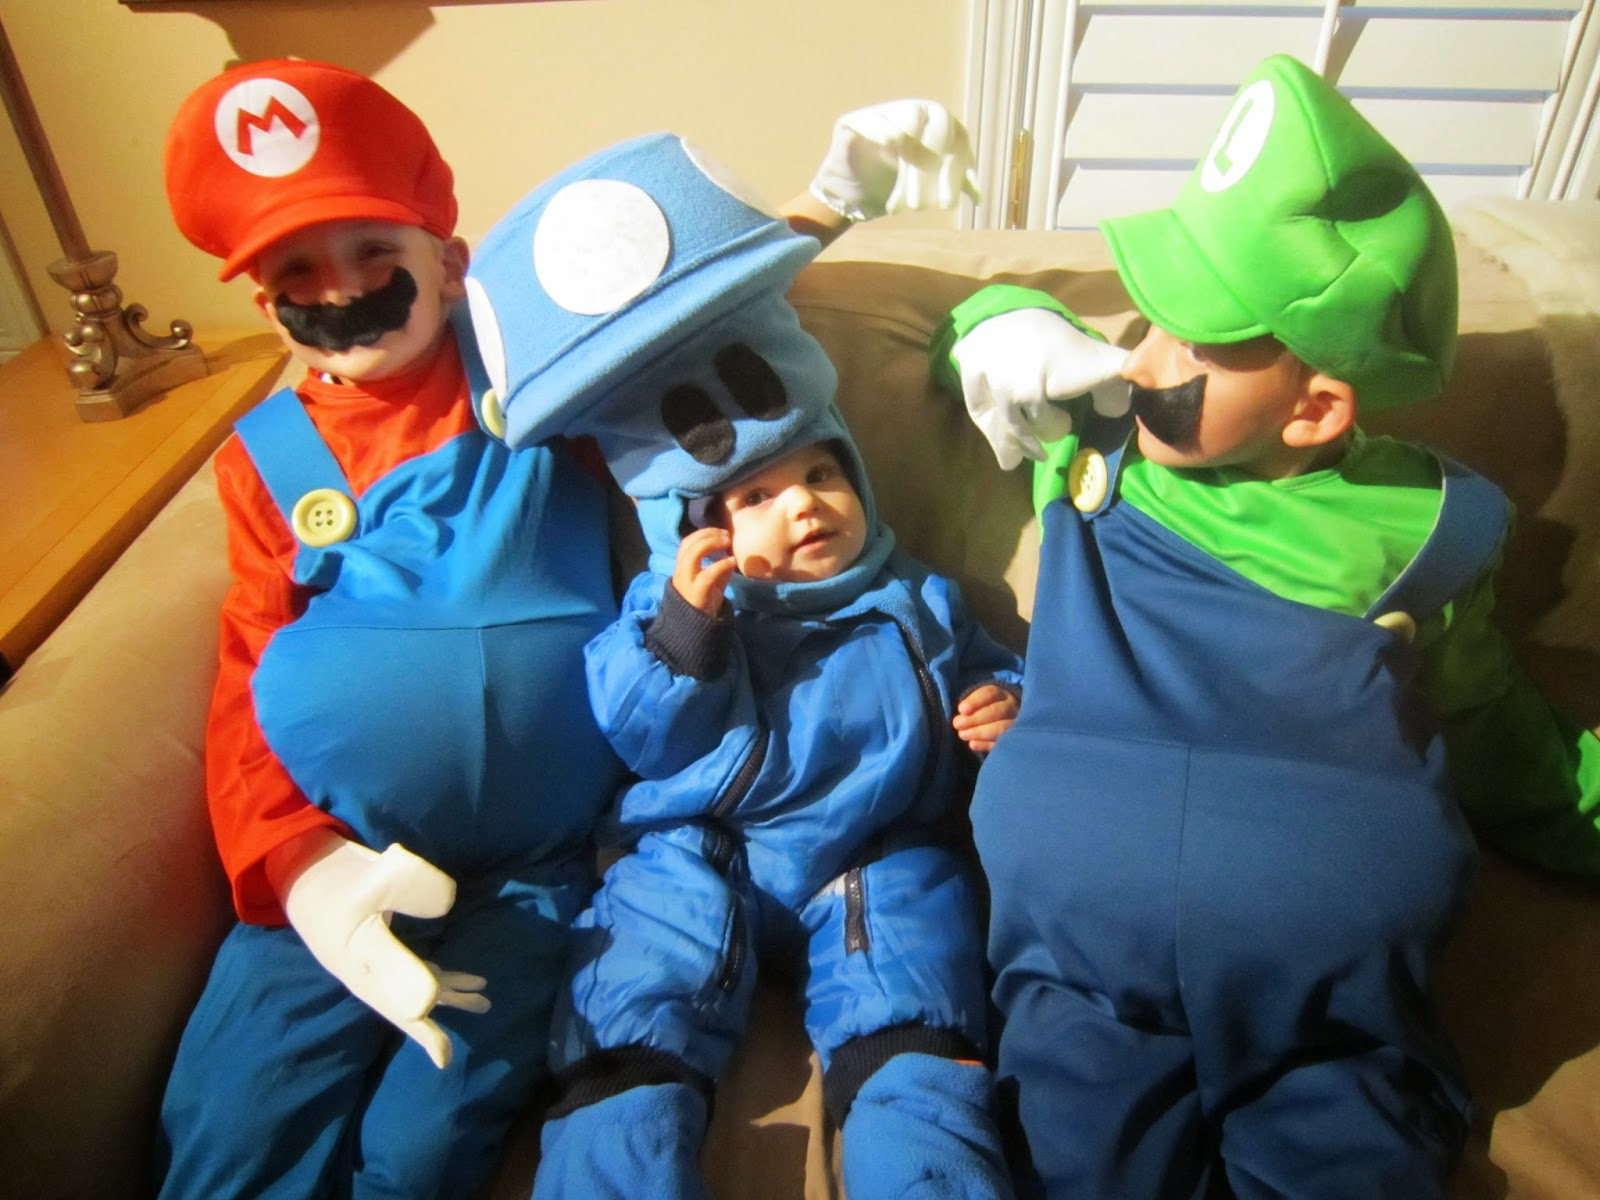 mario brothers halloween costumes kids costumes mario luigi mushroom homemade costume